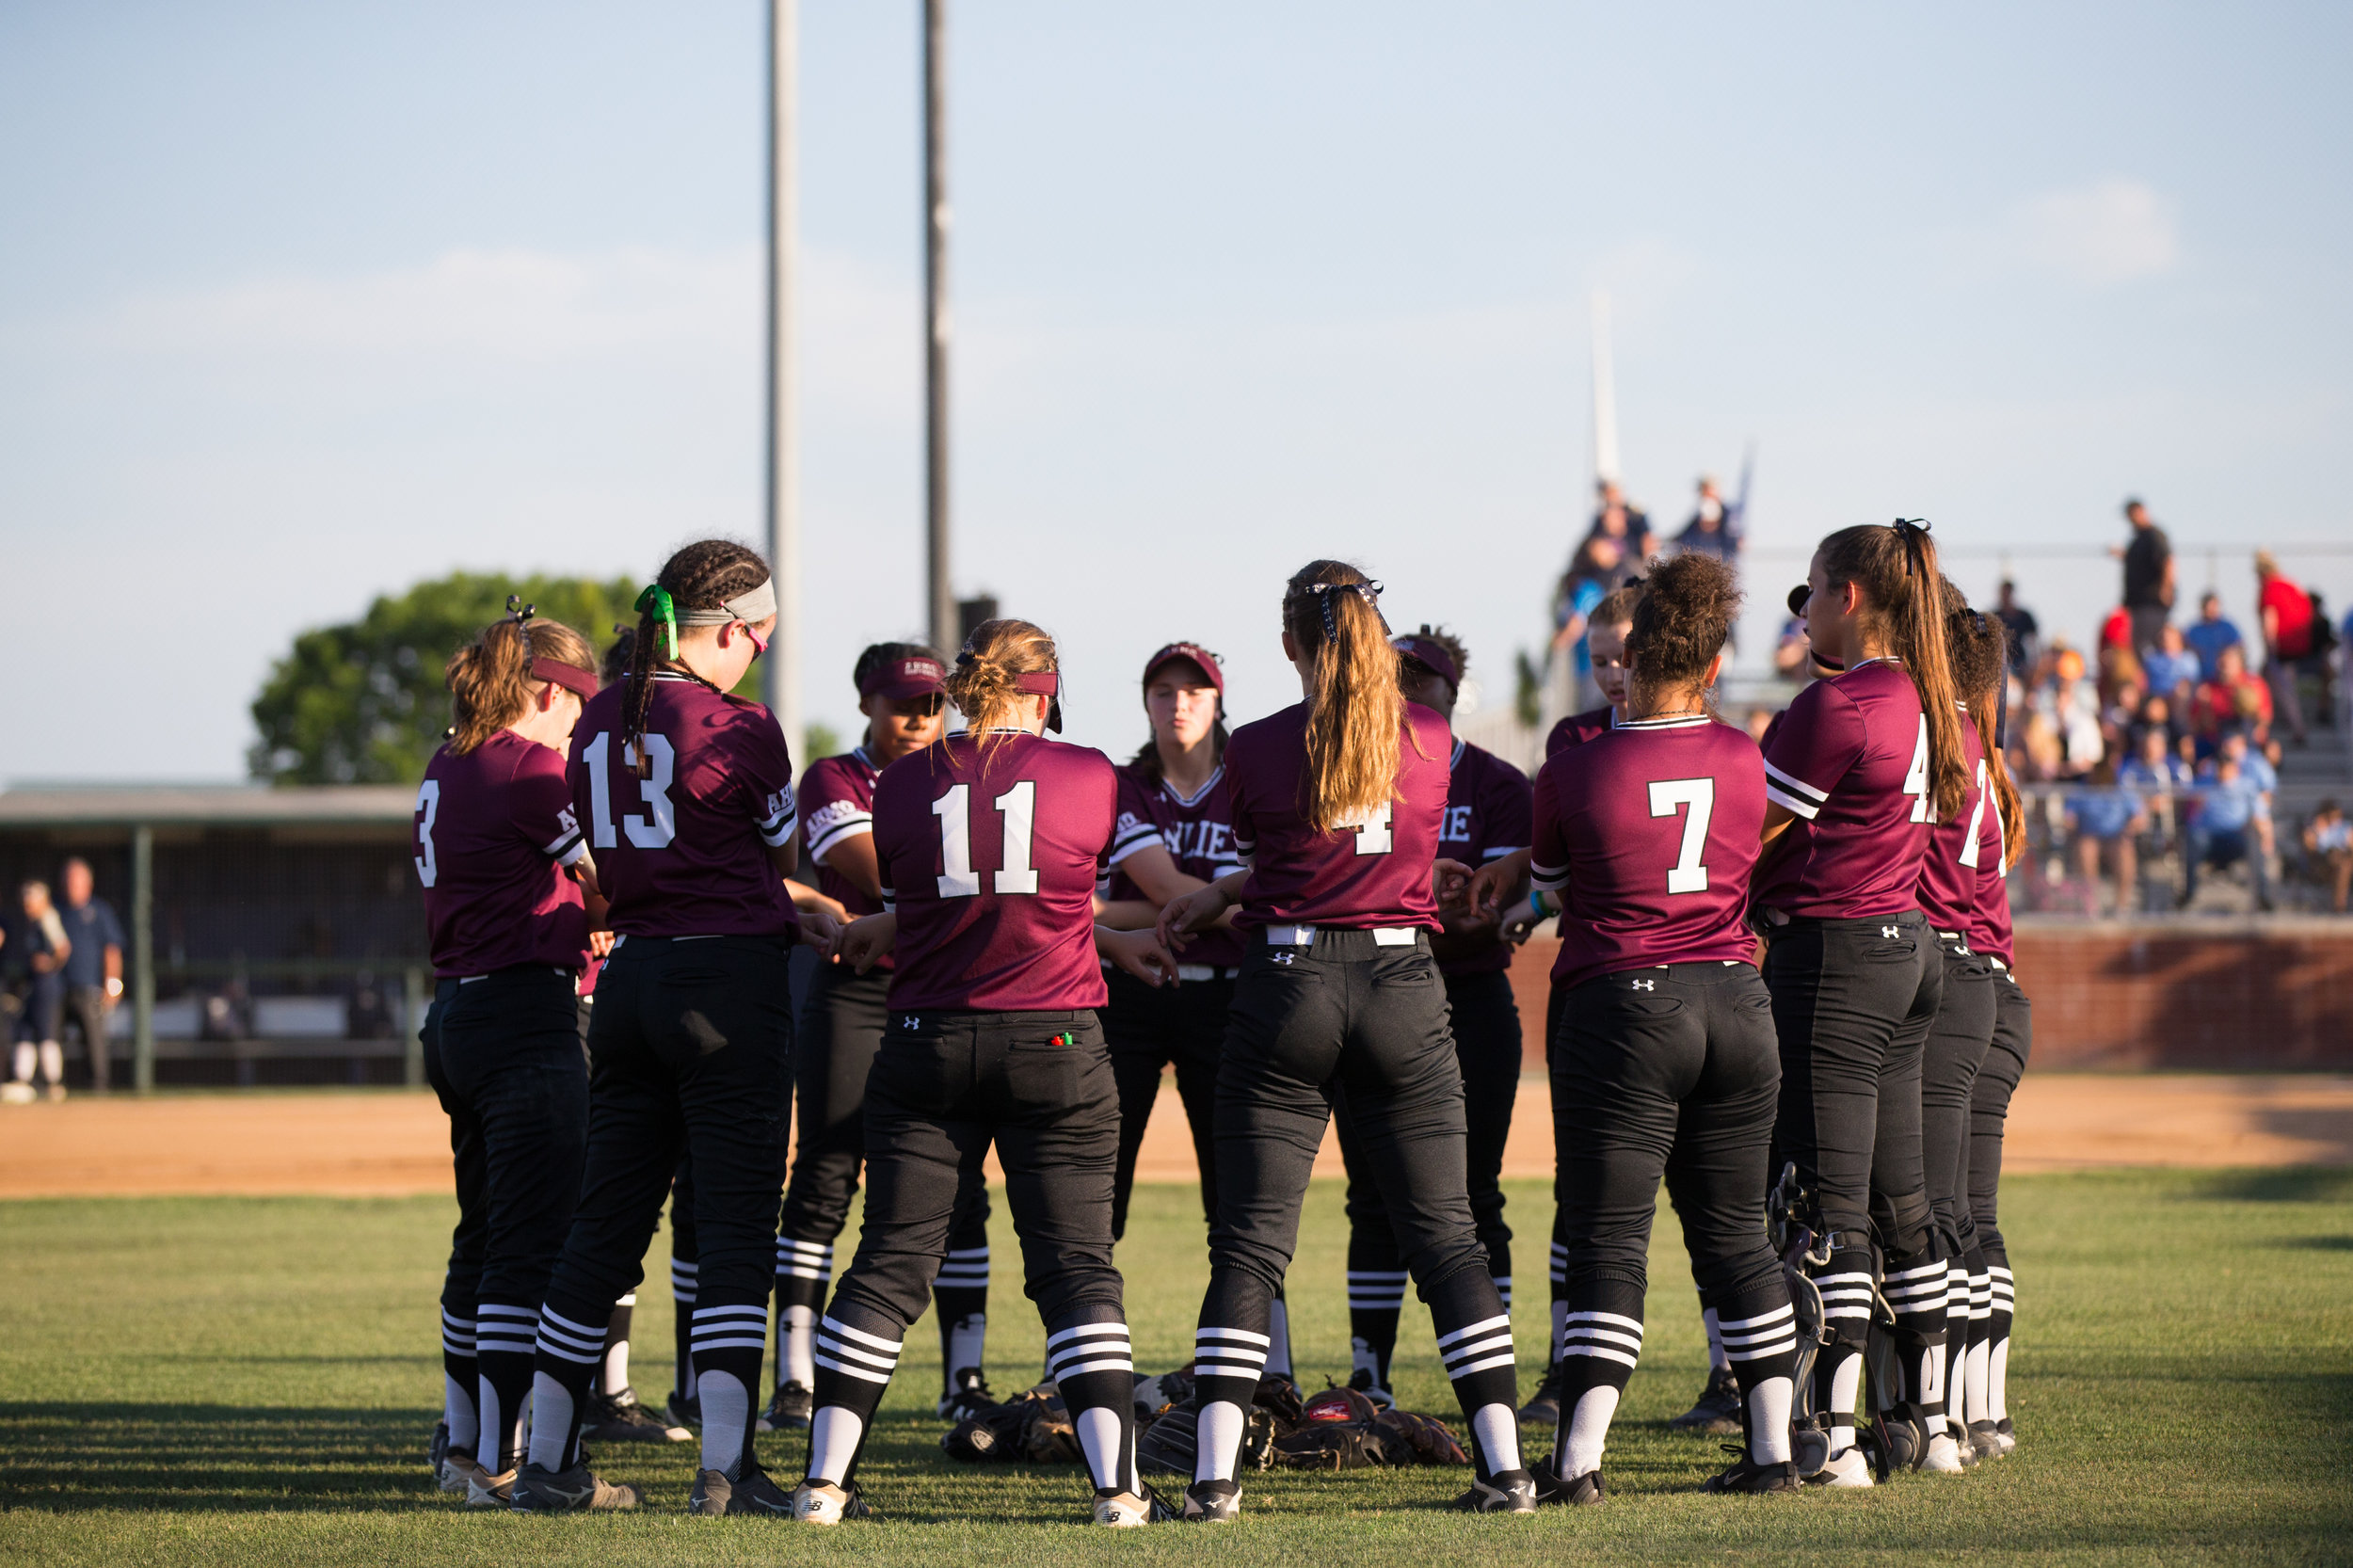 5_18 Wylie Softball-119.jpg